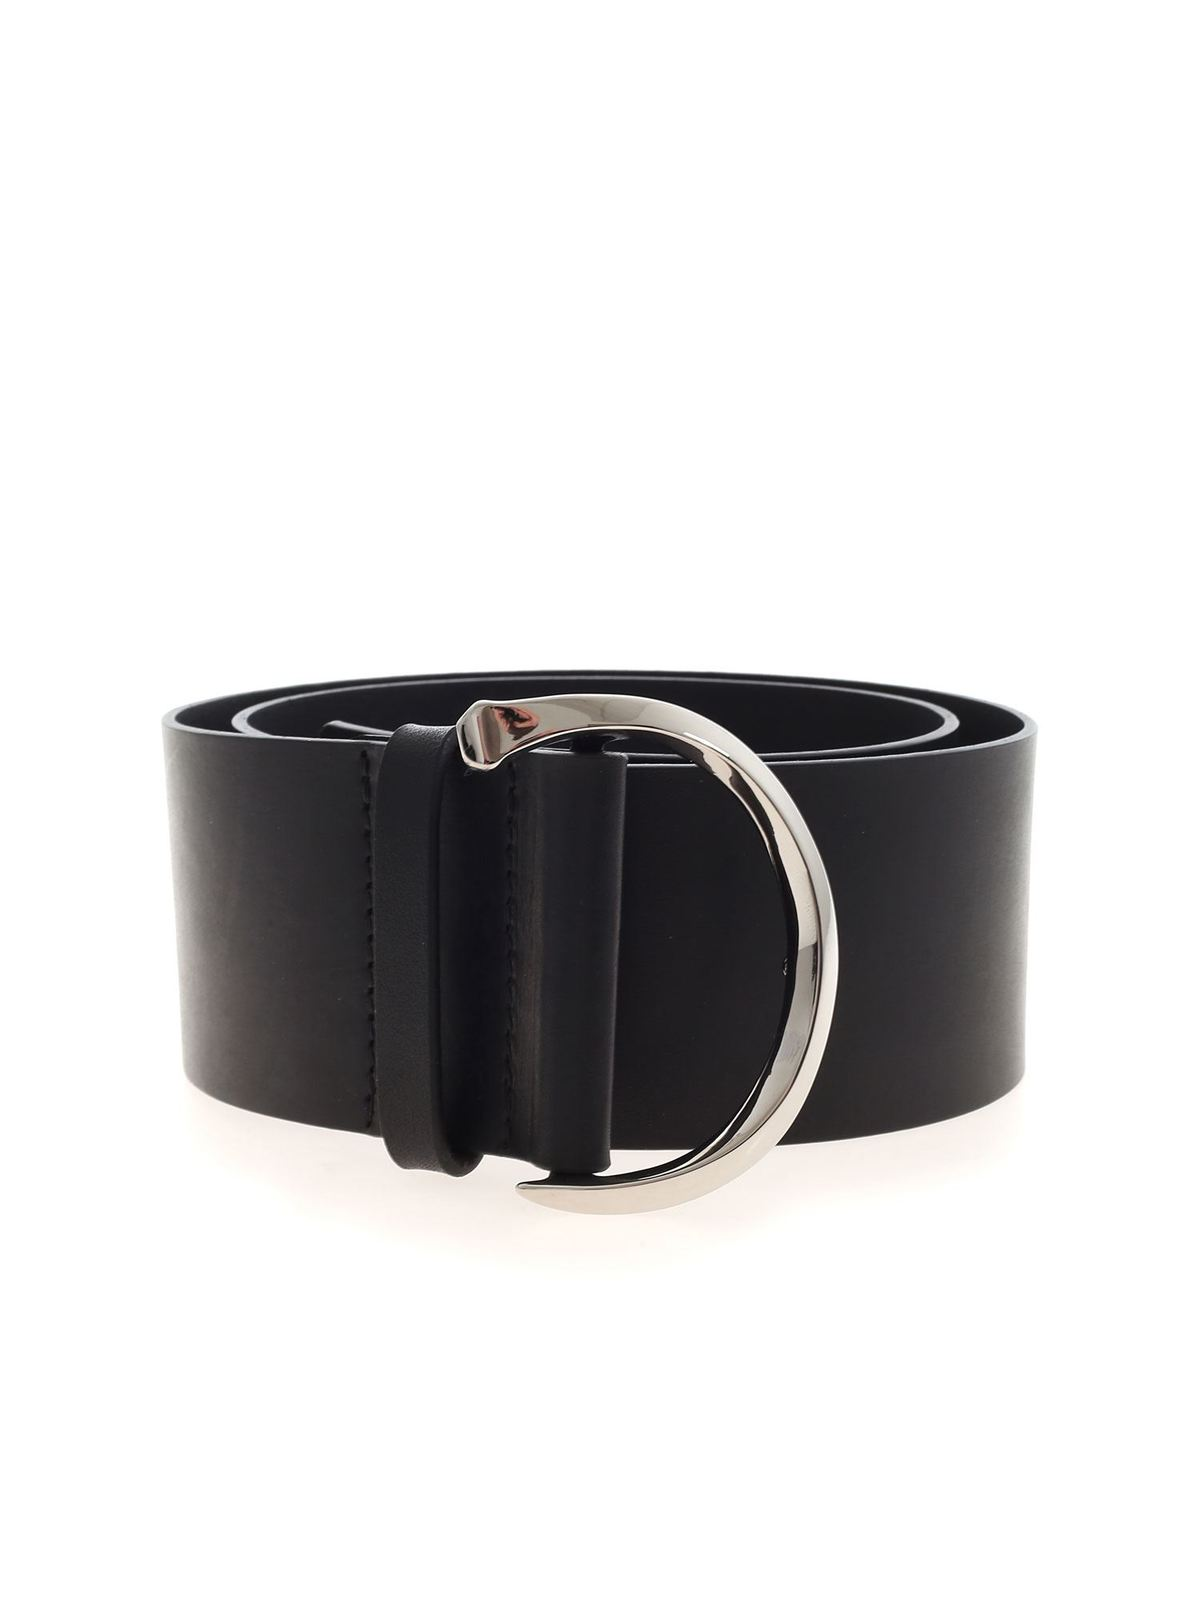 Orciani LEATHER BELT IN BLACK